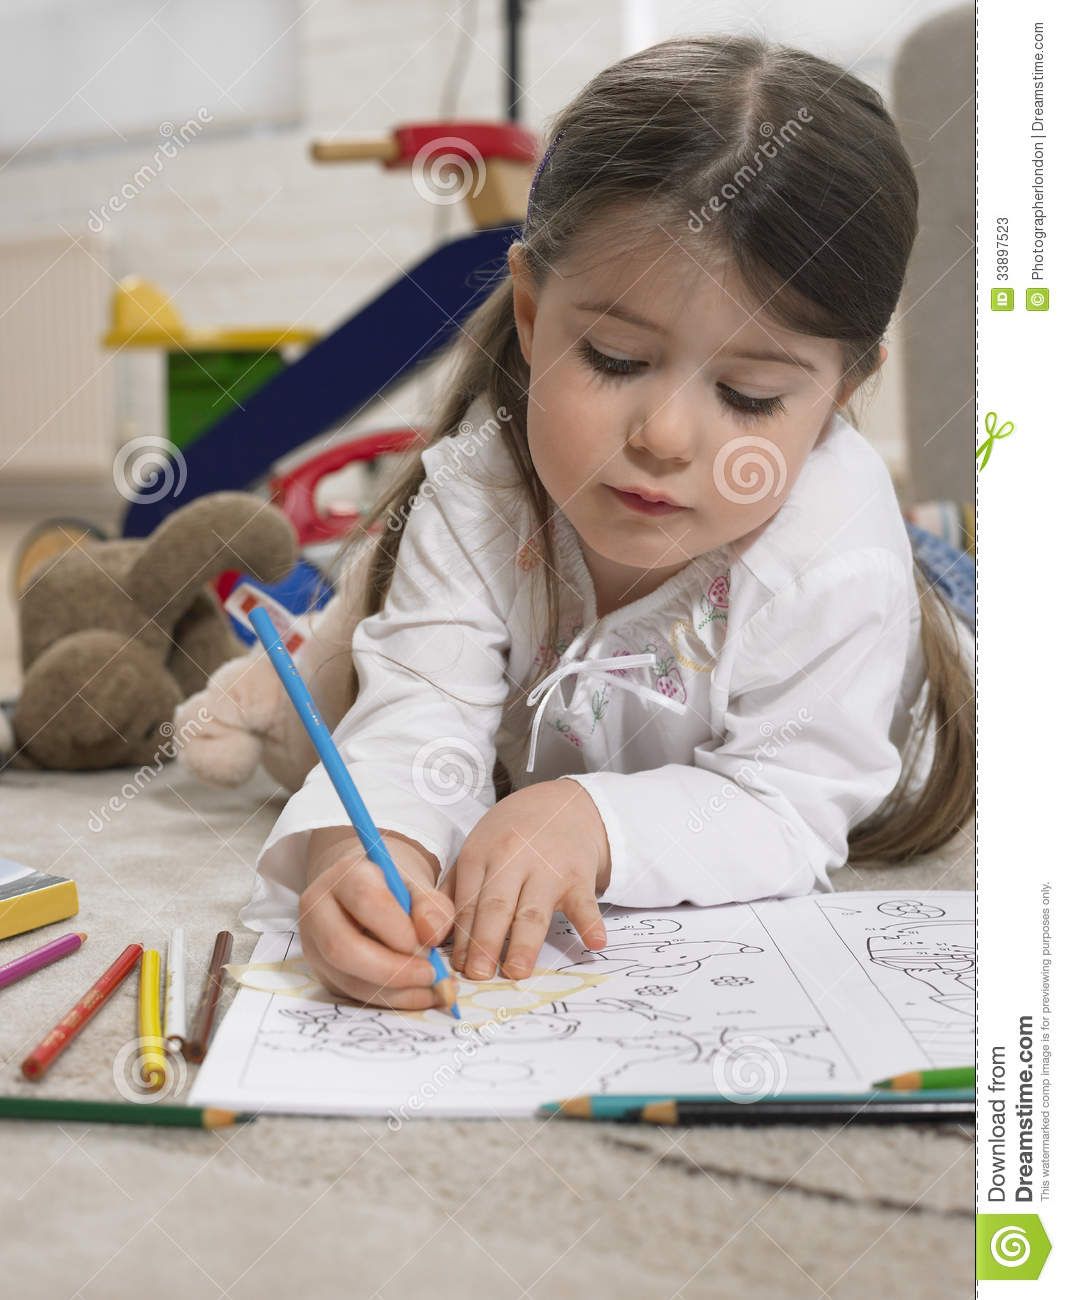 Little Girl Coloring Book On Floor Stock Image - Image of cute ...